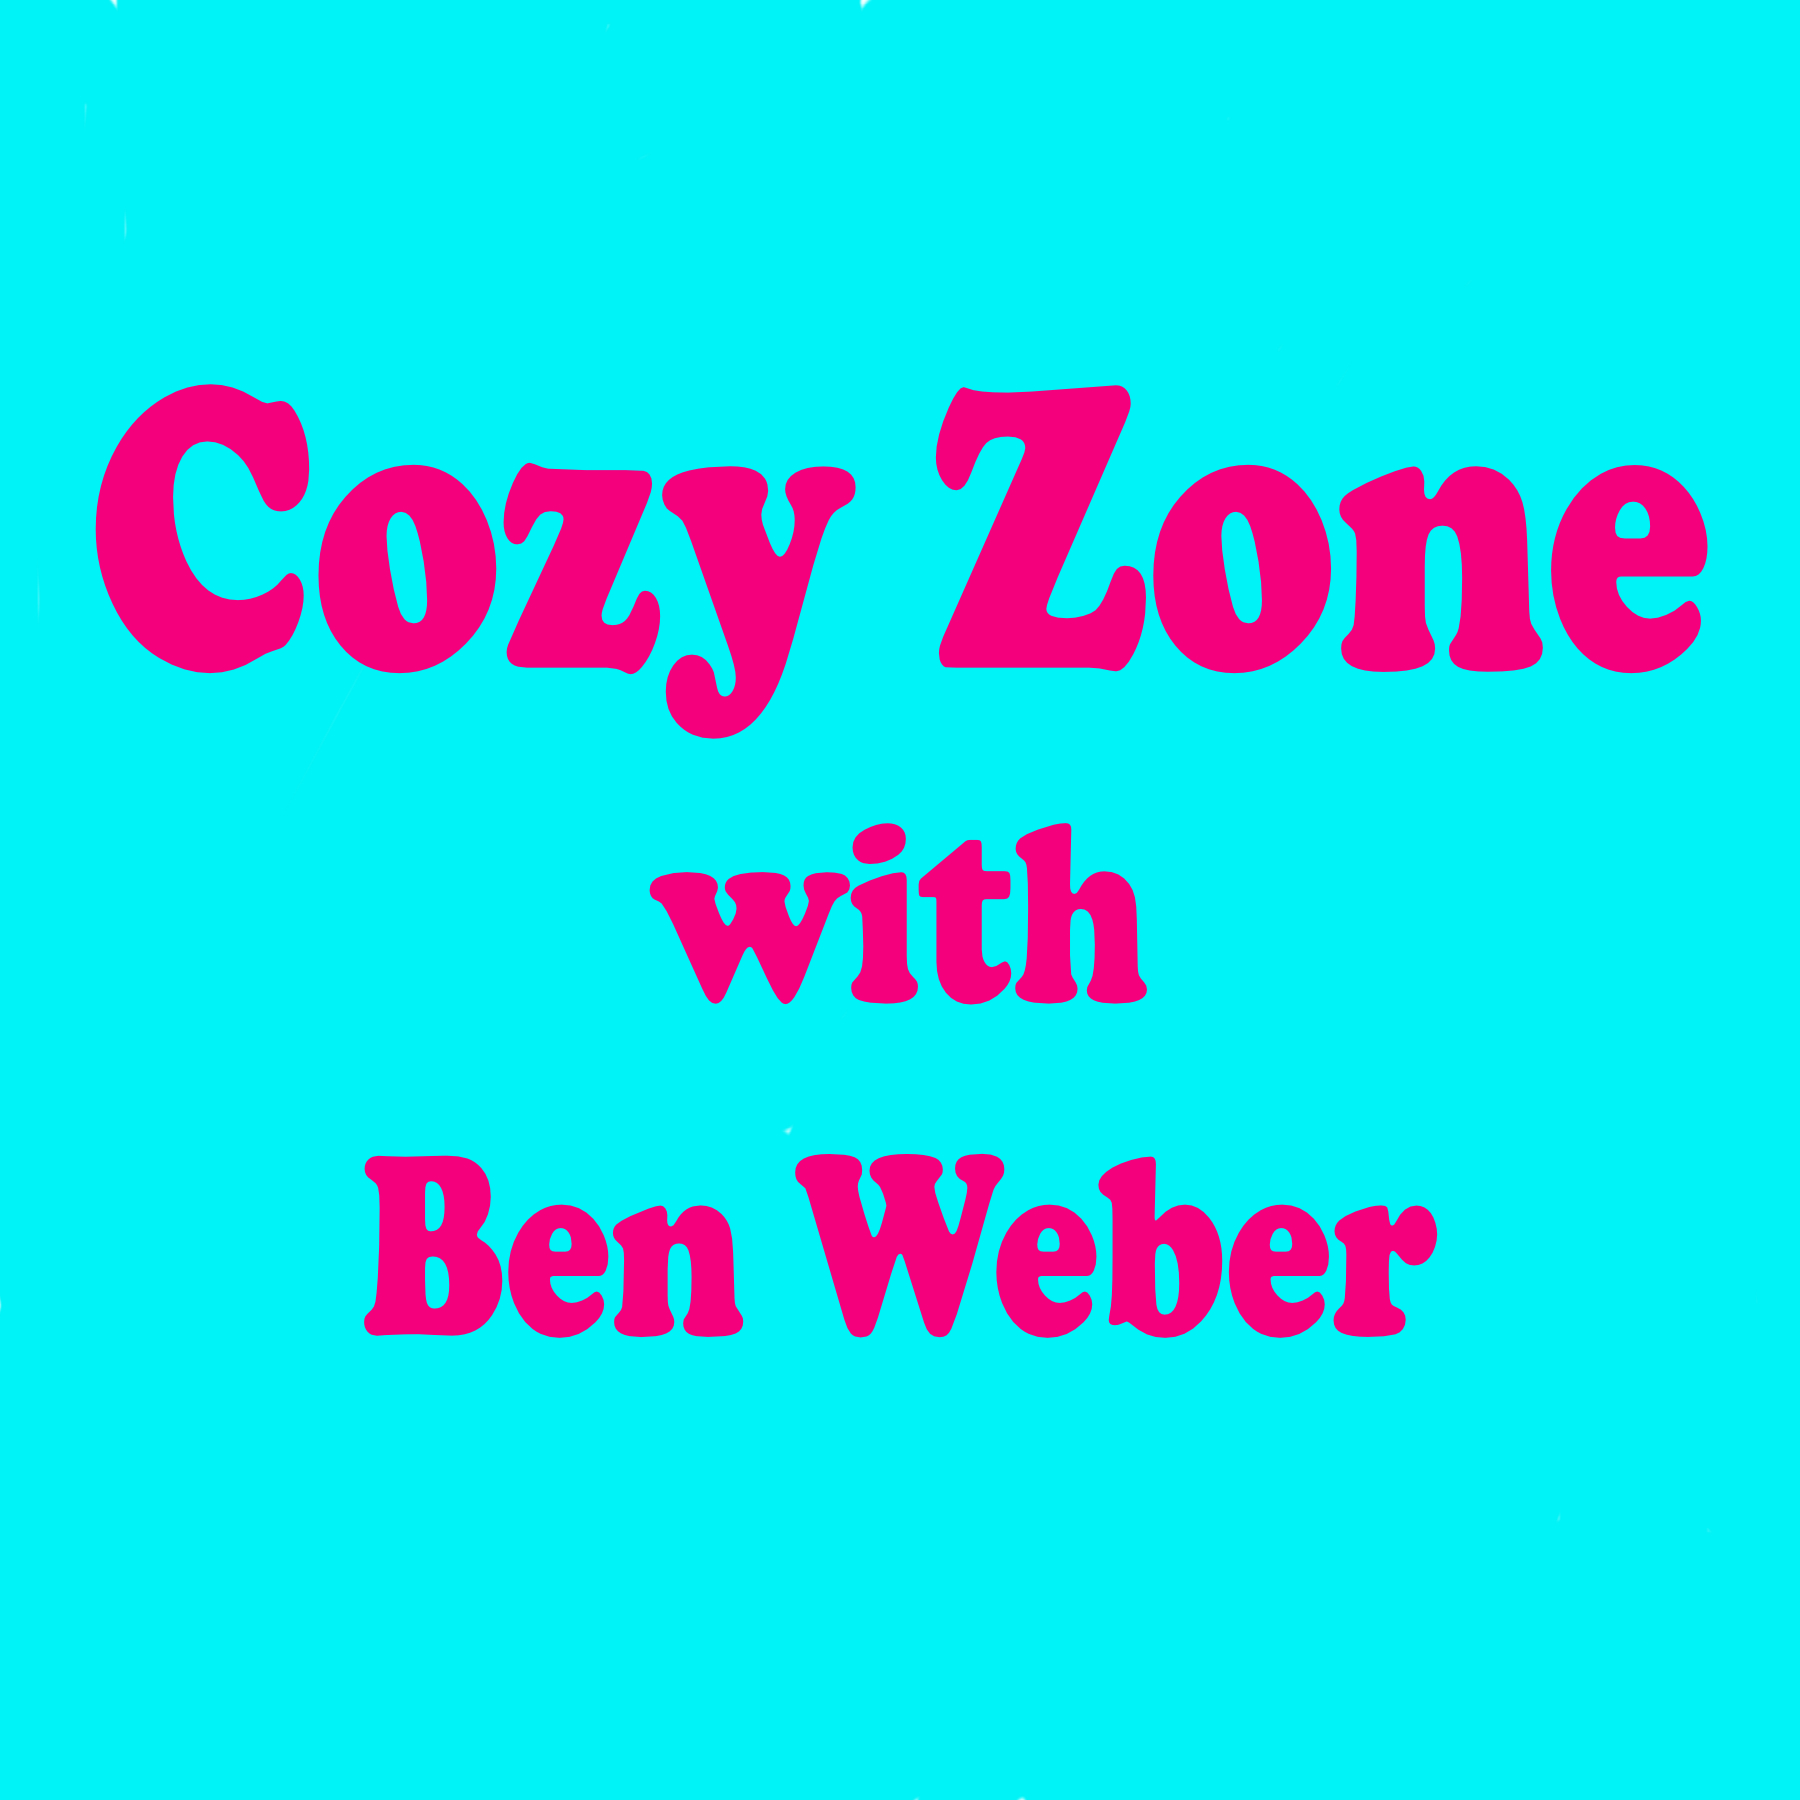 COZY ZONE with Ben Weber